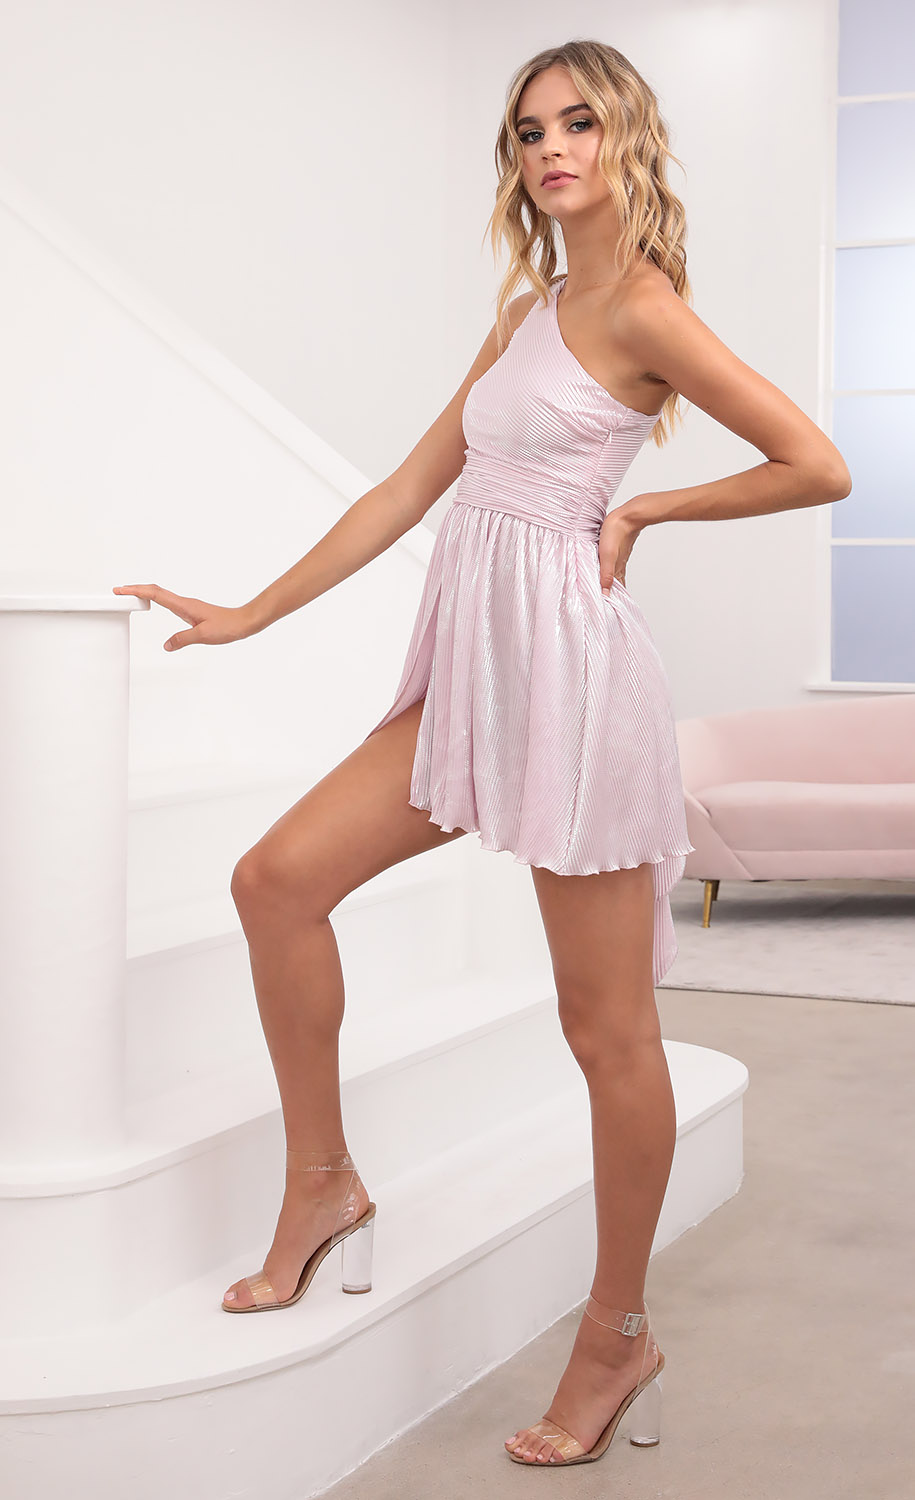 Mary One Shoulder Dress in Pink Shimmer